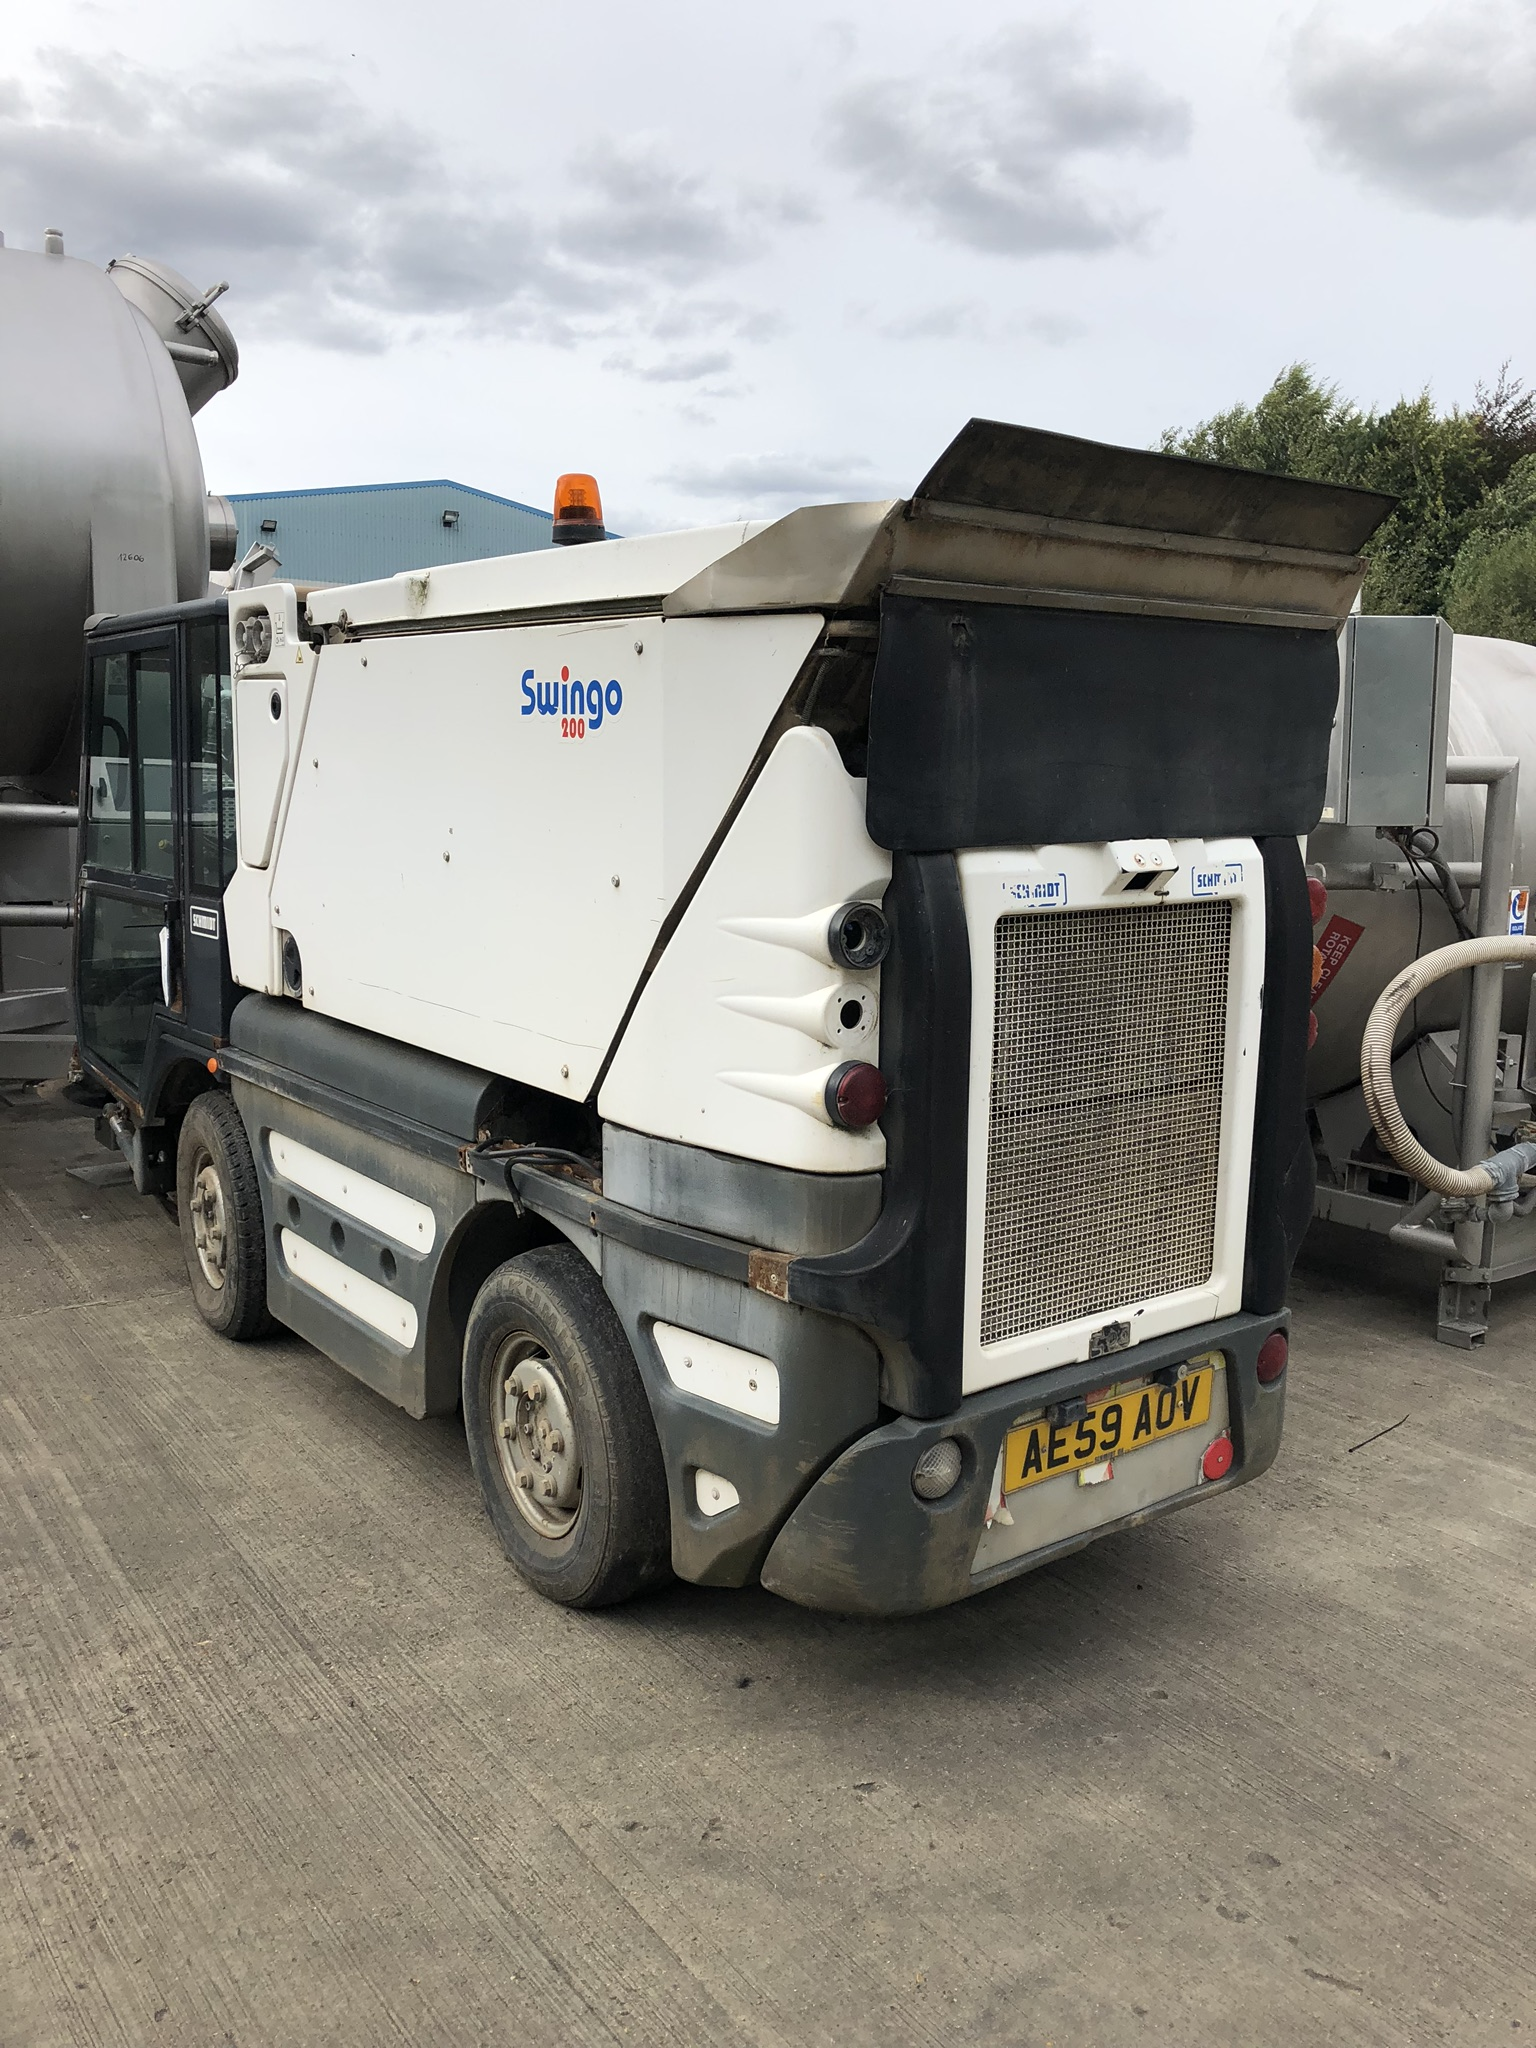 Schmidt Swingo 200 Road Sweeper, registration no. AE59 AOV (understood to require attention - non- - Image 2 of 3